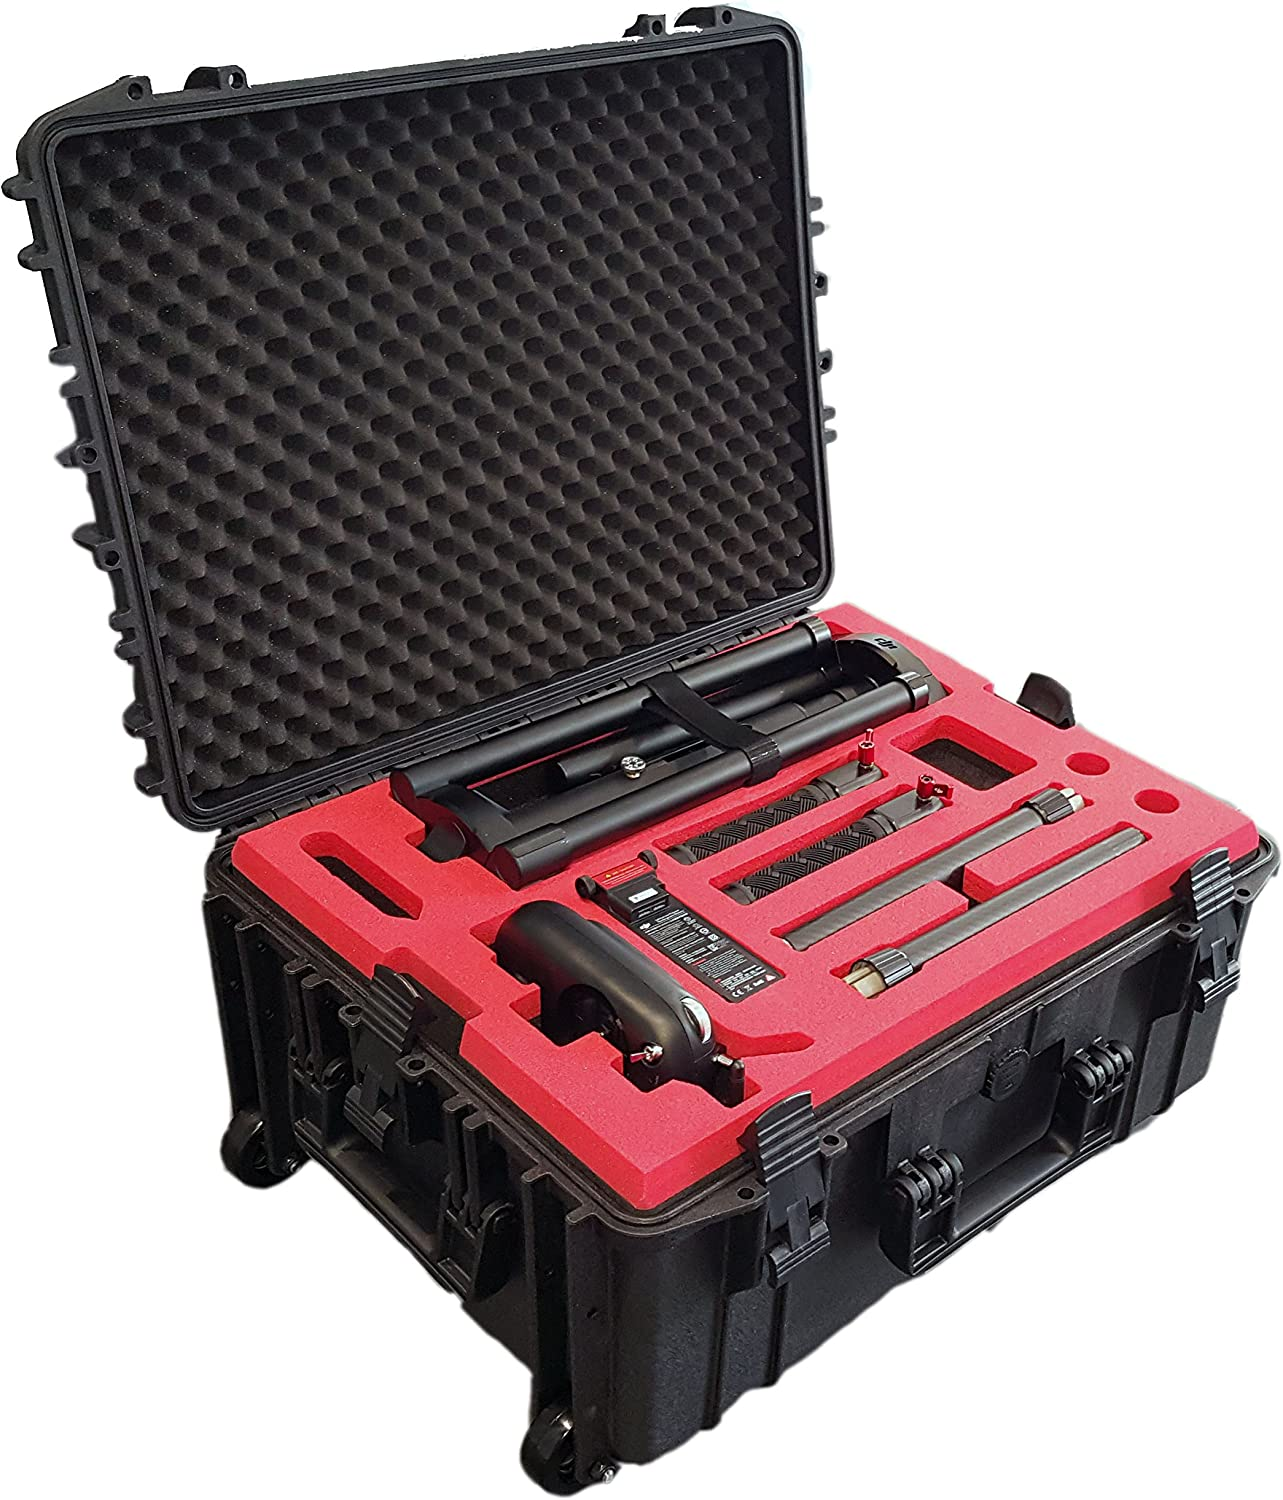 Maleta de Transporte con Ruedas/Trolley idóneo para dji Ronin MX - Made in Germany (Black)